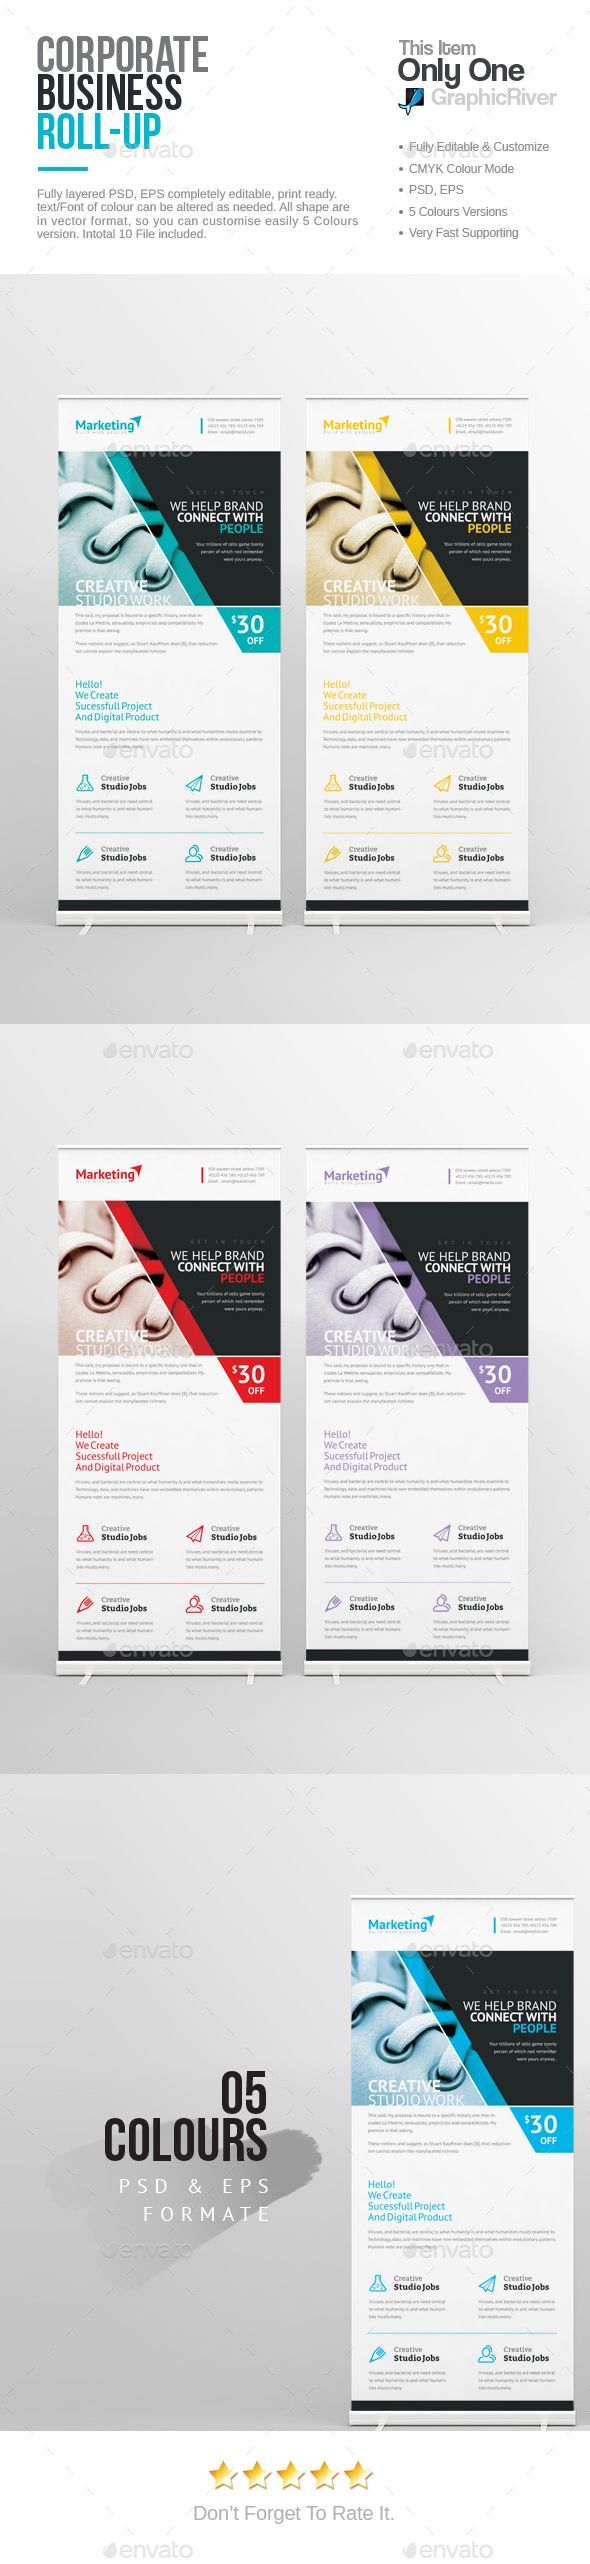 Design of banner - Corporate Roll Up Banner